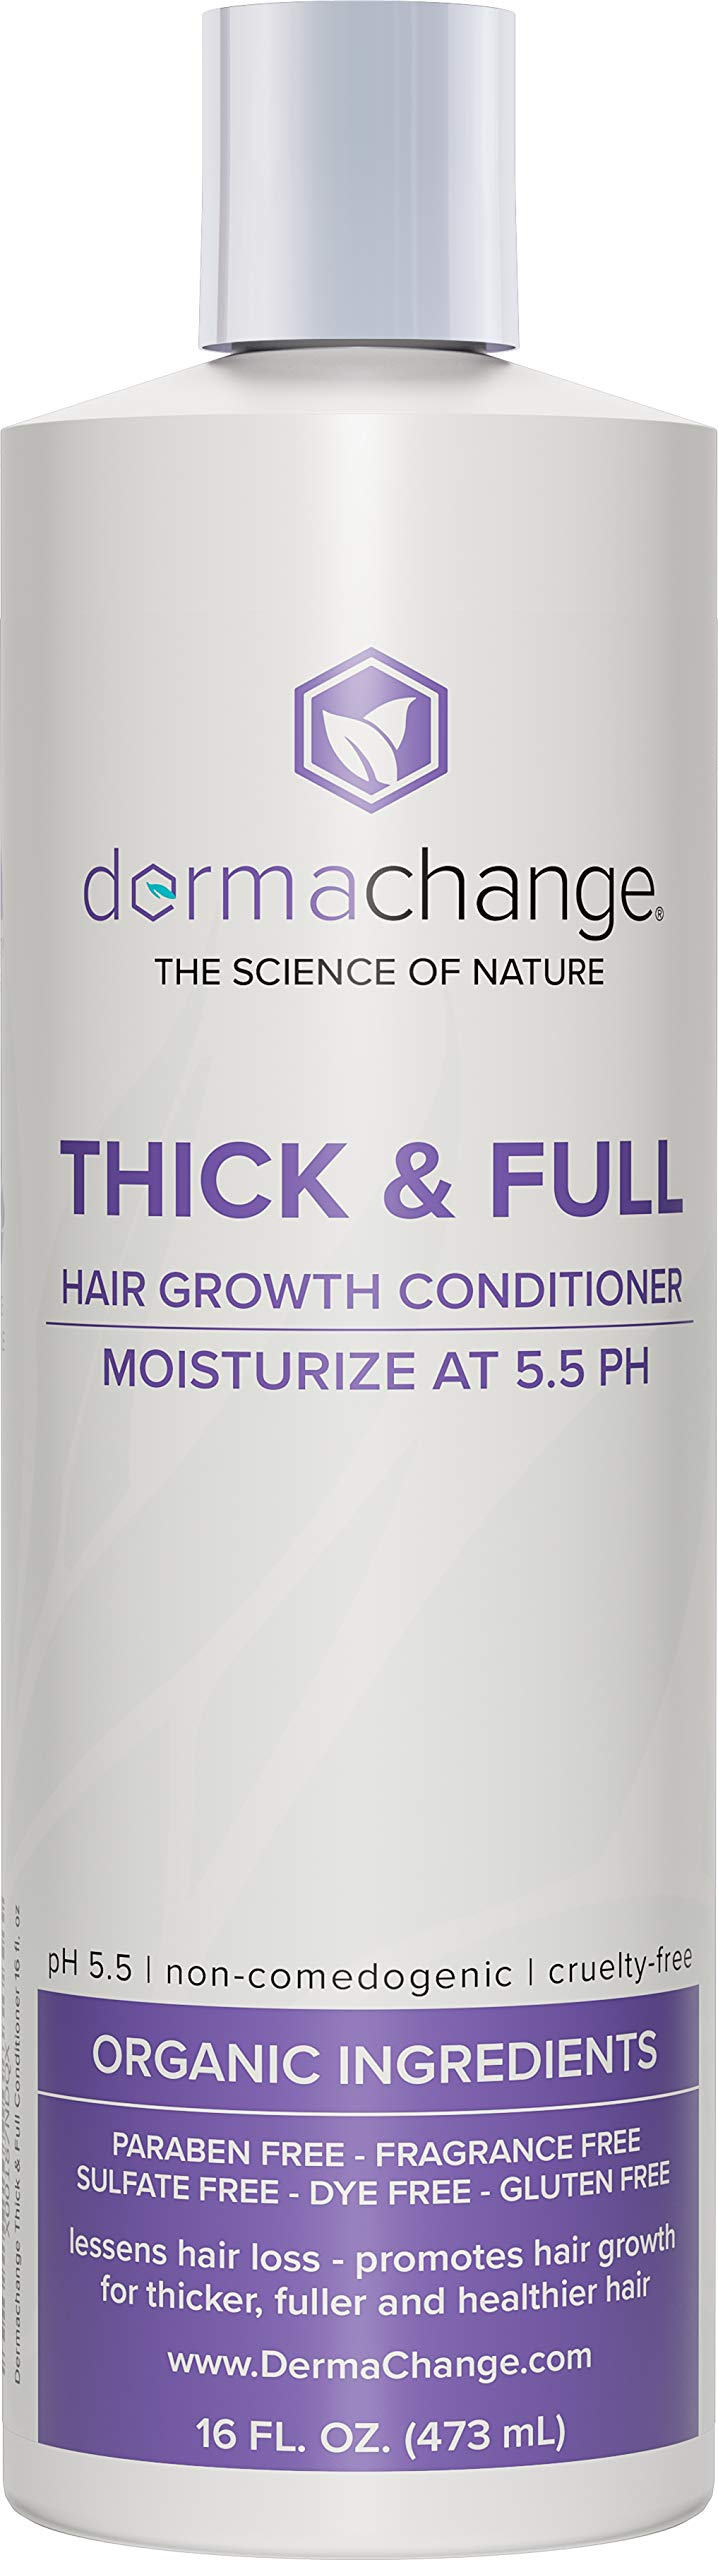 Hair Growth Organic Conditioner - Grow Hair Fast - Sulfate Free - Best Hair Products With Vitamins - Prevent Hair Loss - Helps Dermatitis - For Women and Men - Made in USA, 16 fl.oz.(473ml) by DermaChange